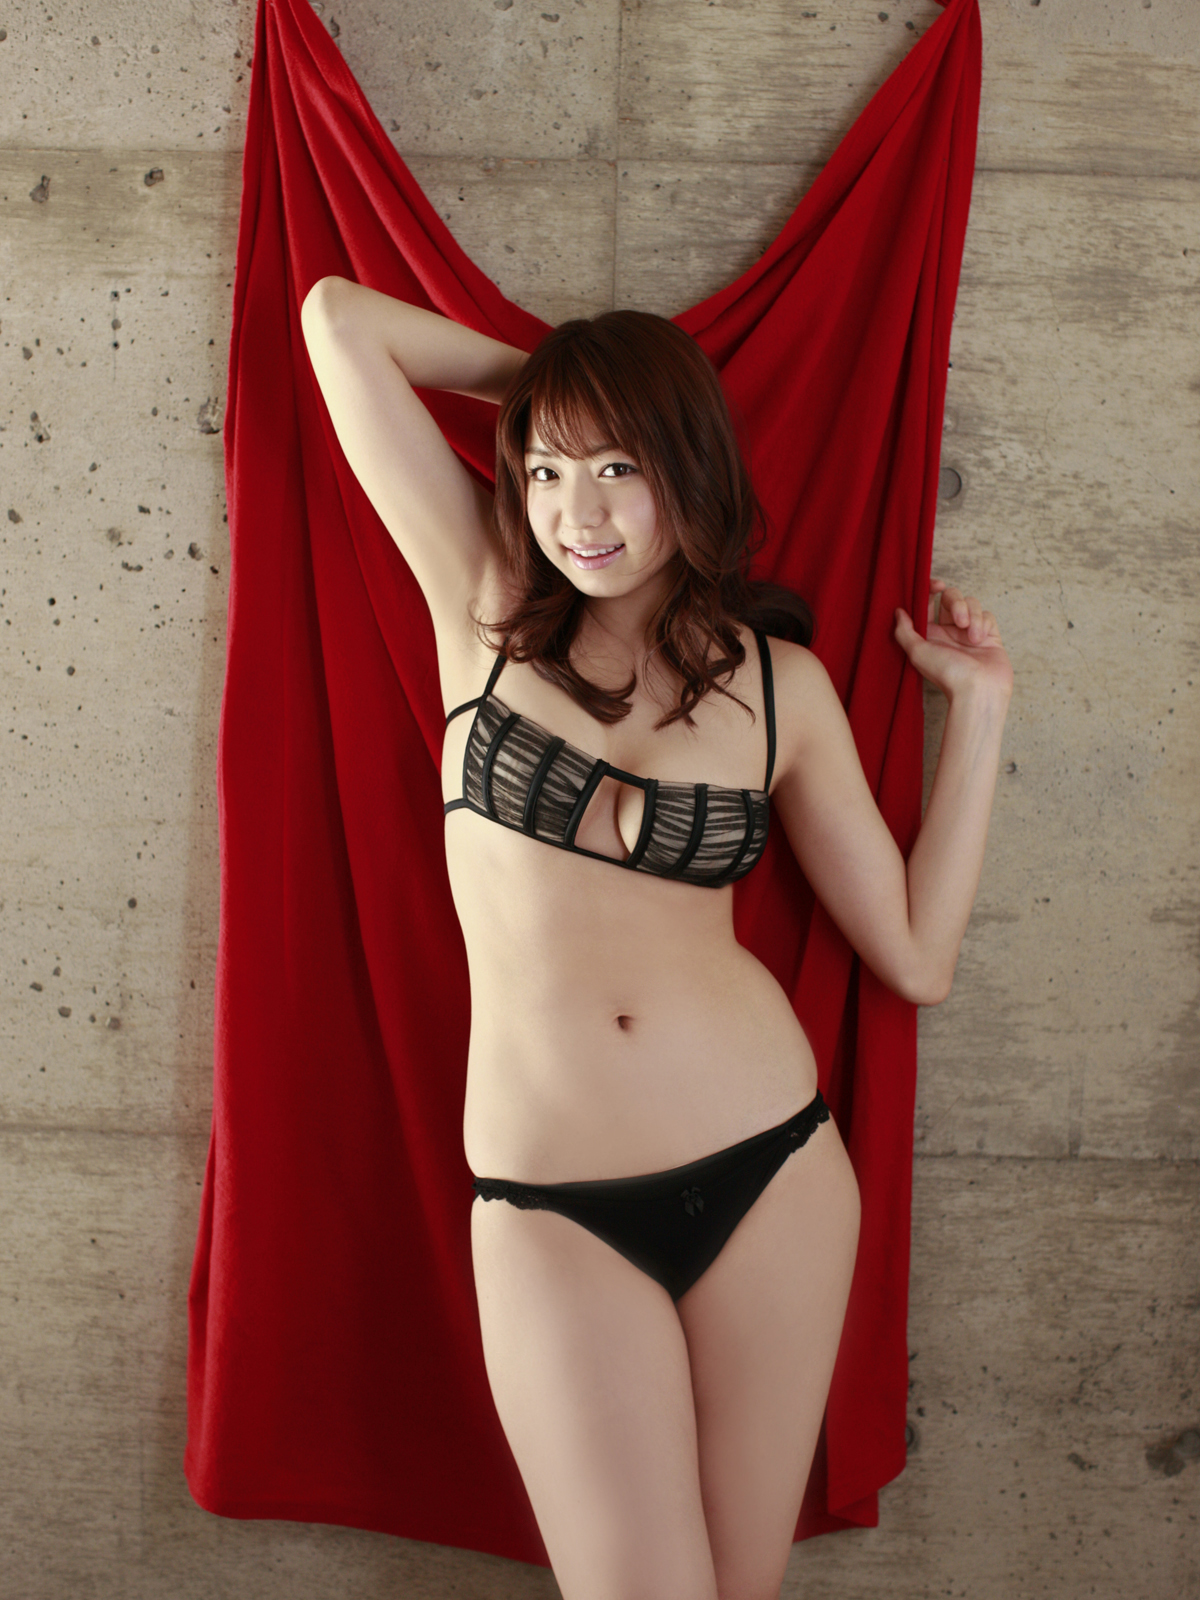 1200 x 1600 jpeg 1092kB, Swimsuit Nakamura | Search Results | Calendar ...